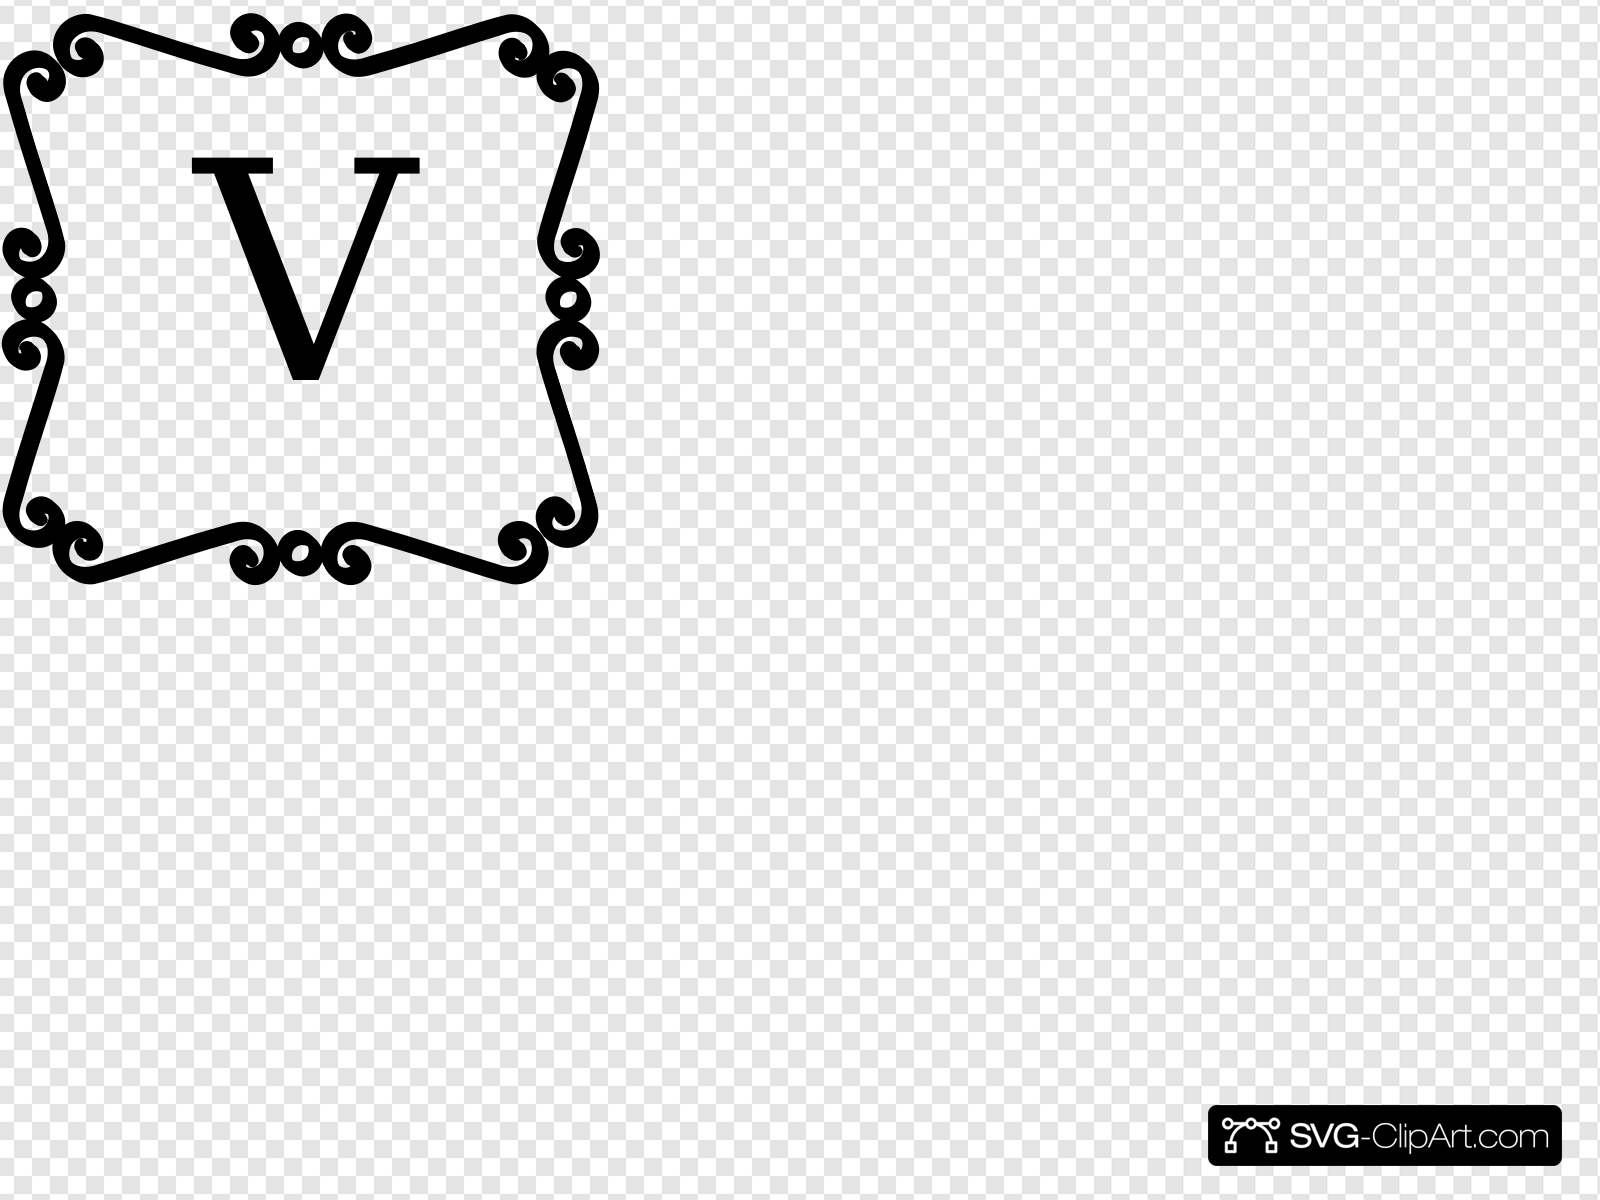 Black And White Scroll Border Clip art, Icon and SVG.